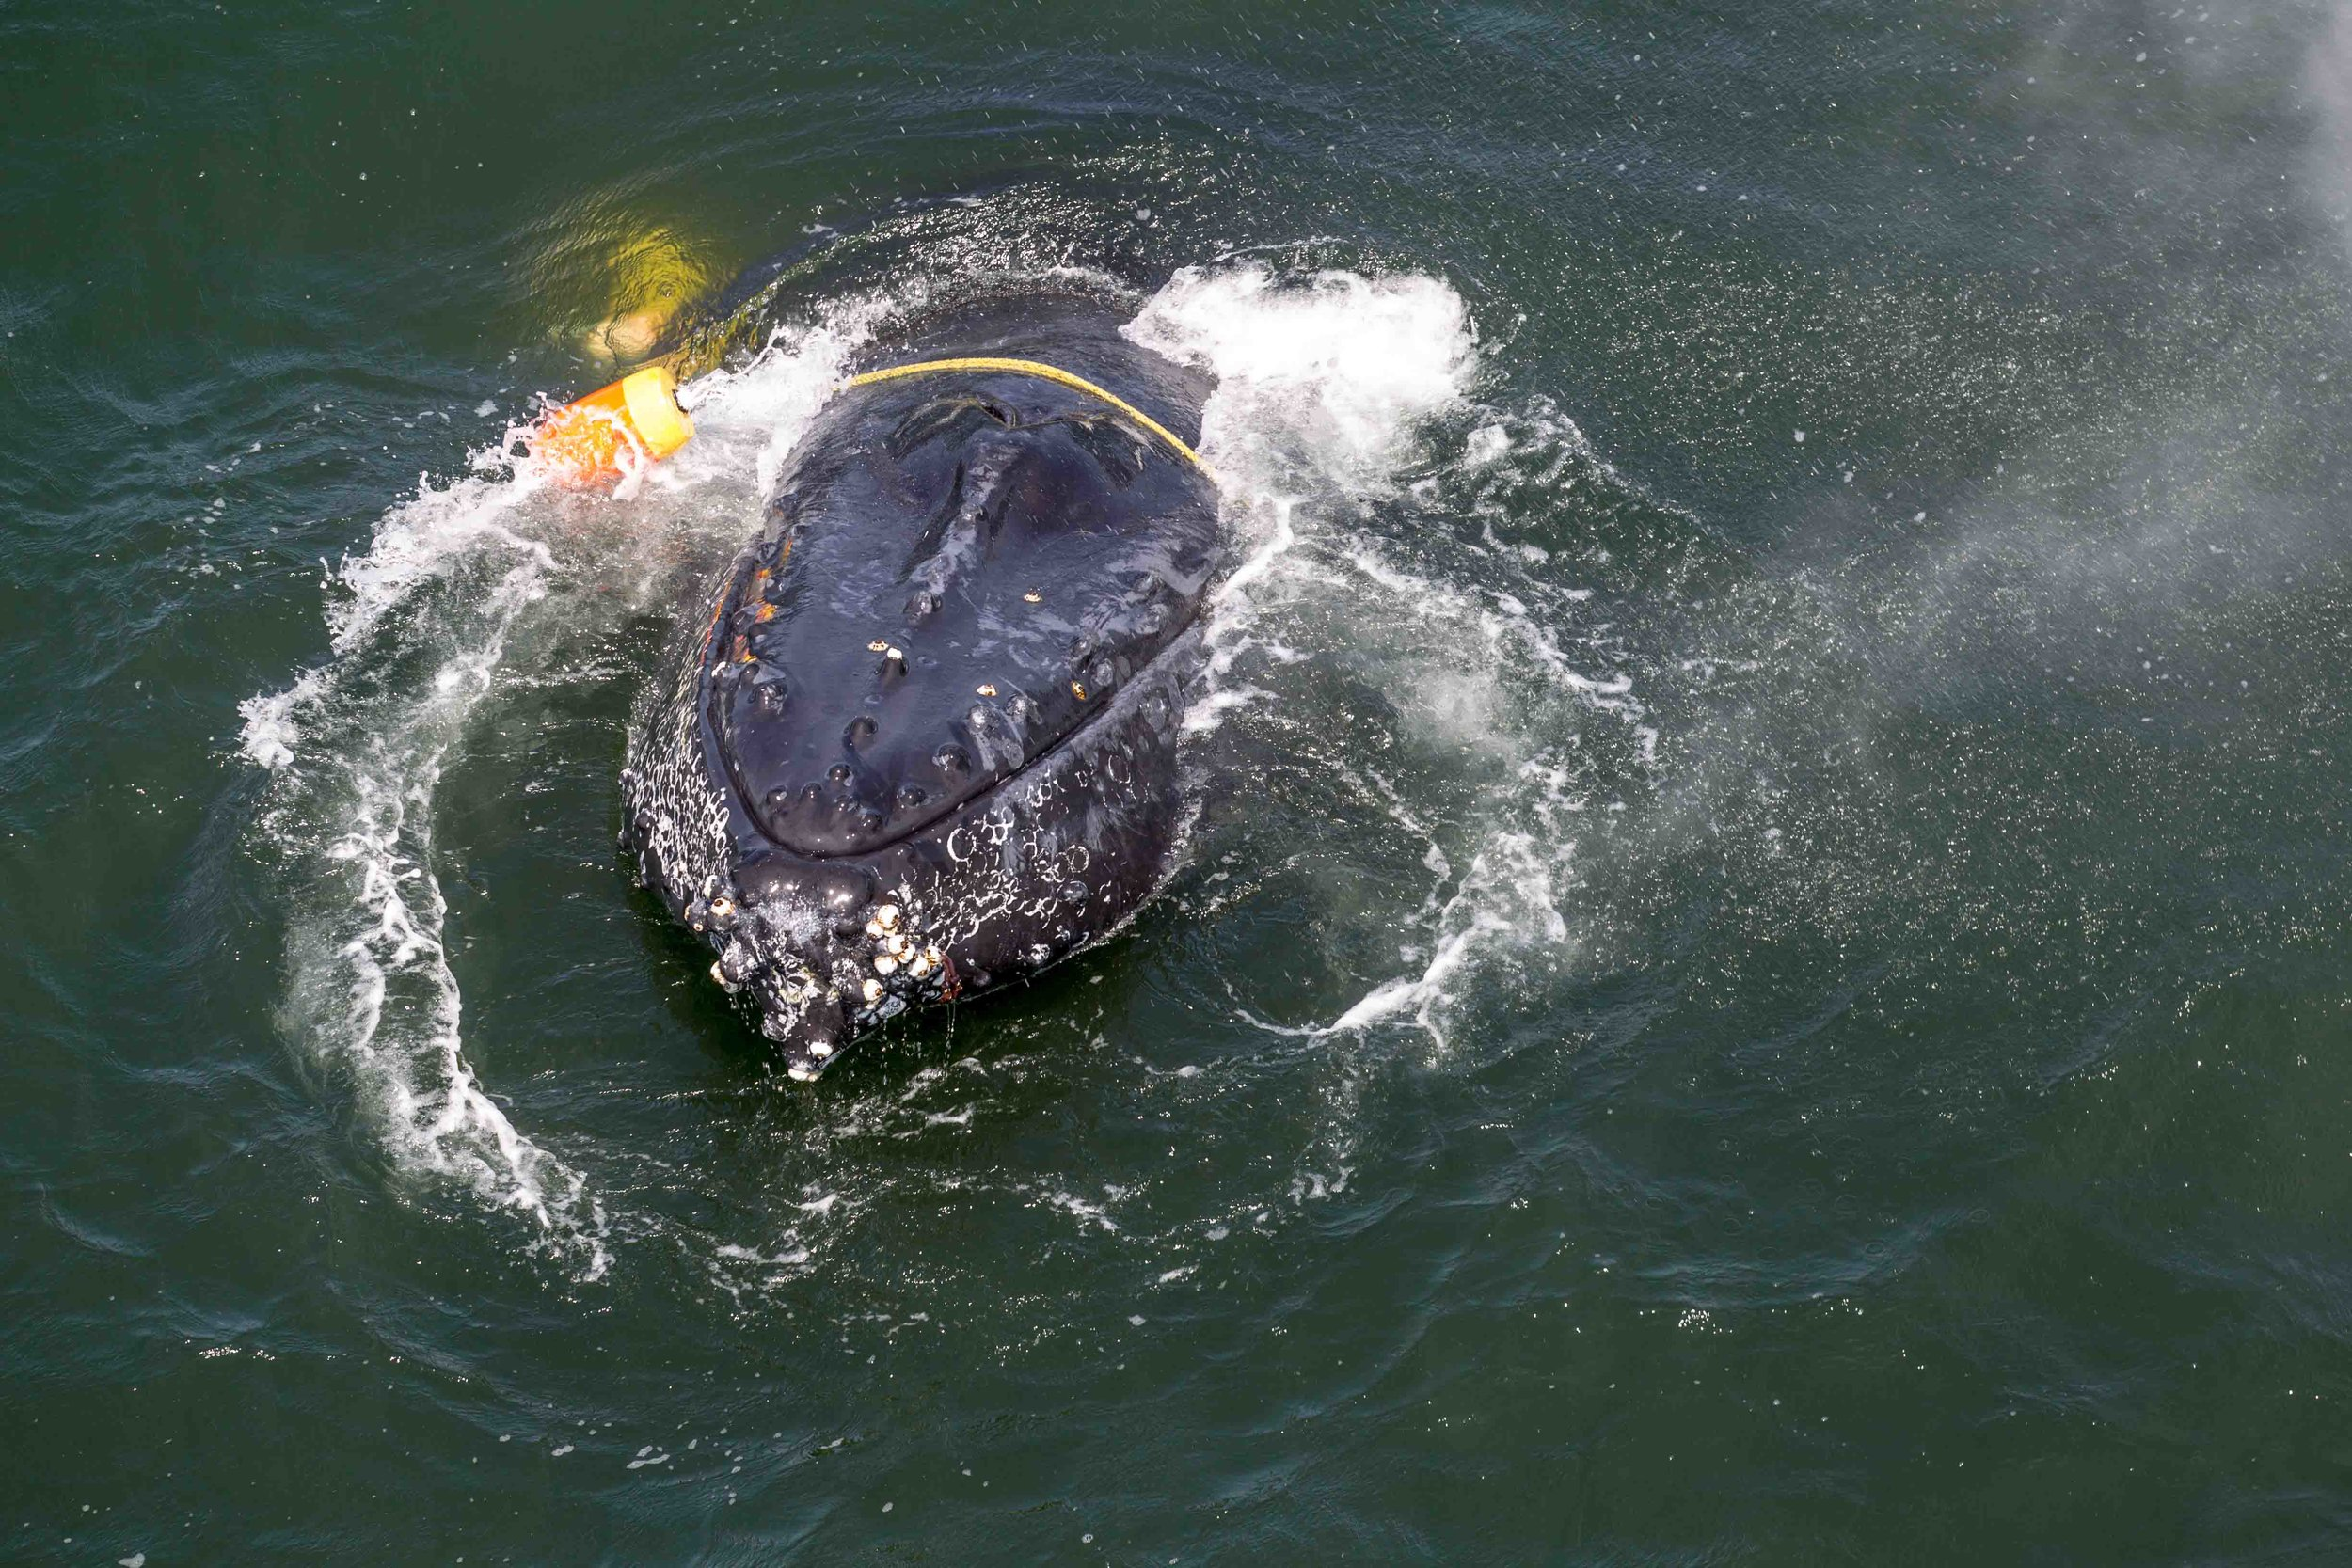 A humpback whale entangled in fishing gear surfaces for air about two miles off Crescent City, California. Disentanglement teams working with local fishermen and others freed the whale on Tuesday July 19. Photo credit: Bryant Anderson/NOAA Fisheries, taken under NOAA Fisheries MMHSRP Permit# 18786-01